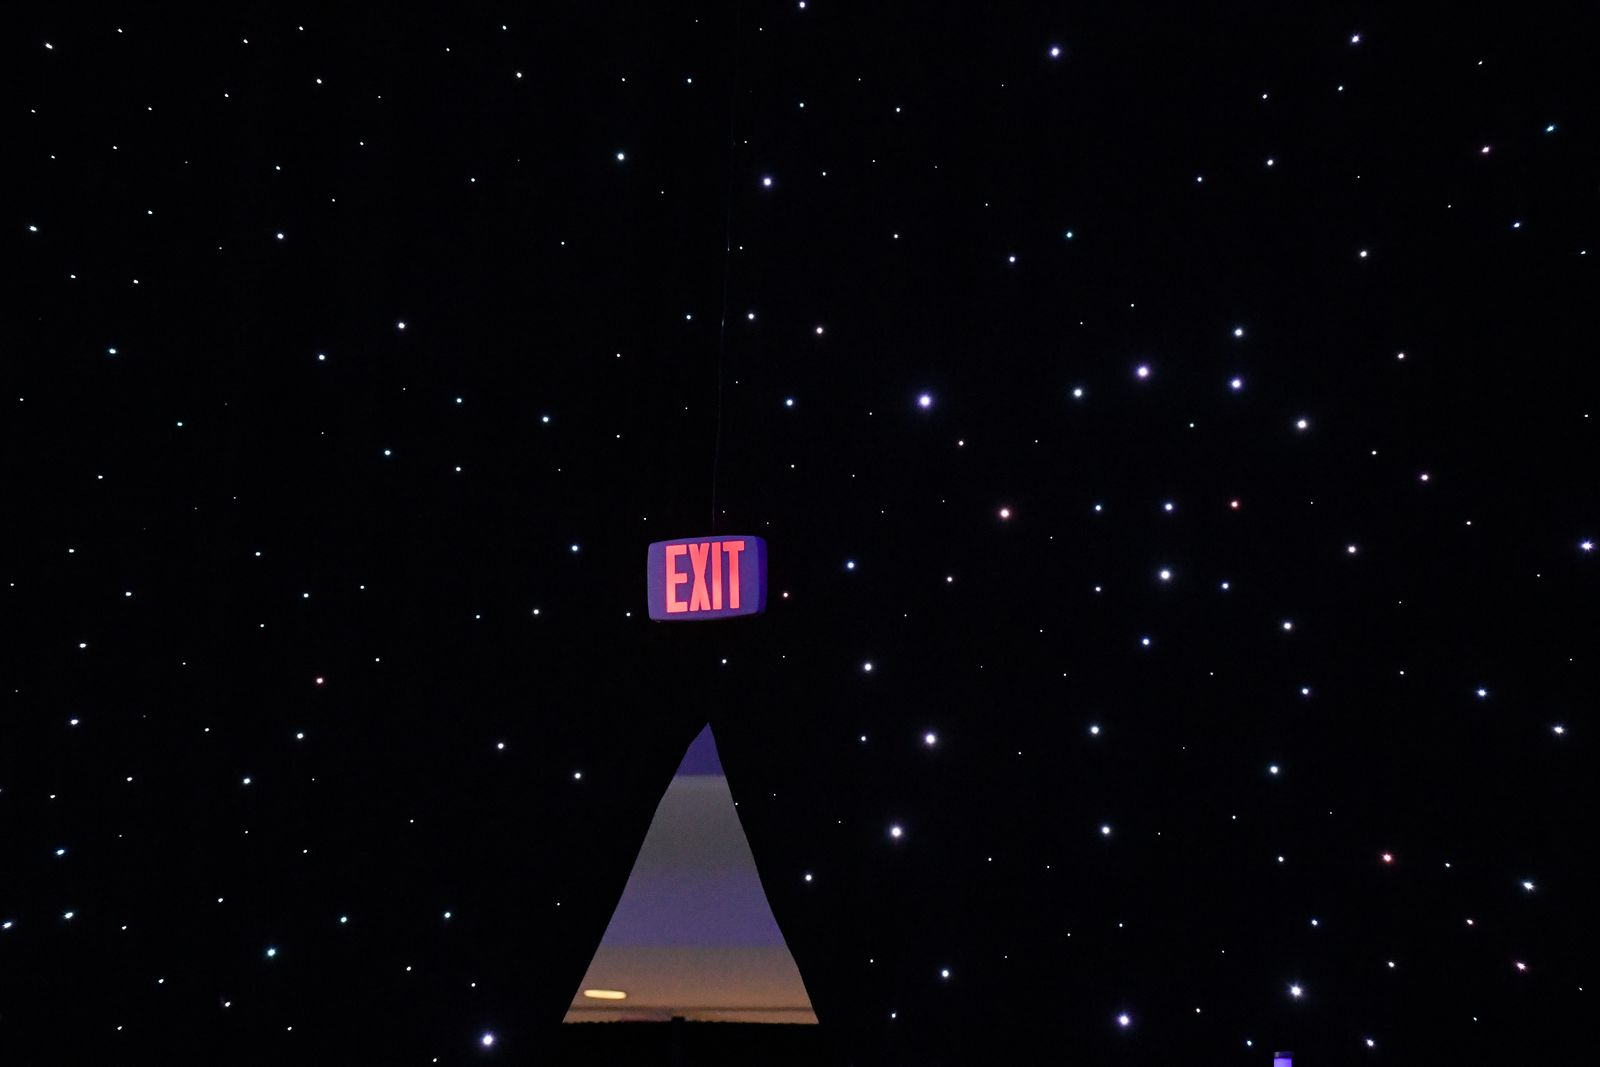 An exit sign is seen as founder, Chairman, CEO and President of Amazon Jeff Bezos unveils his space company Blue Origin's space exploration lunar lander rocket called Blue Moon during an unveiling event in Washington